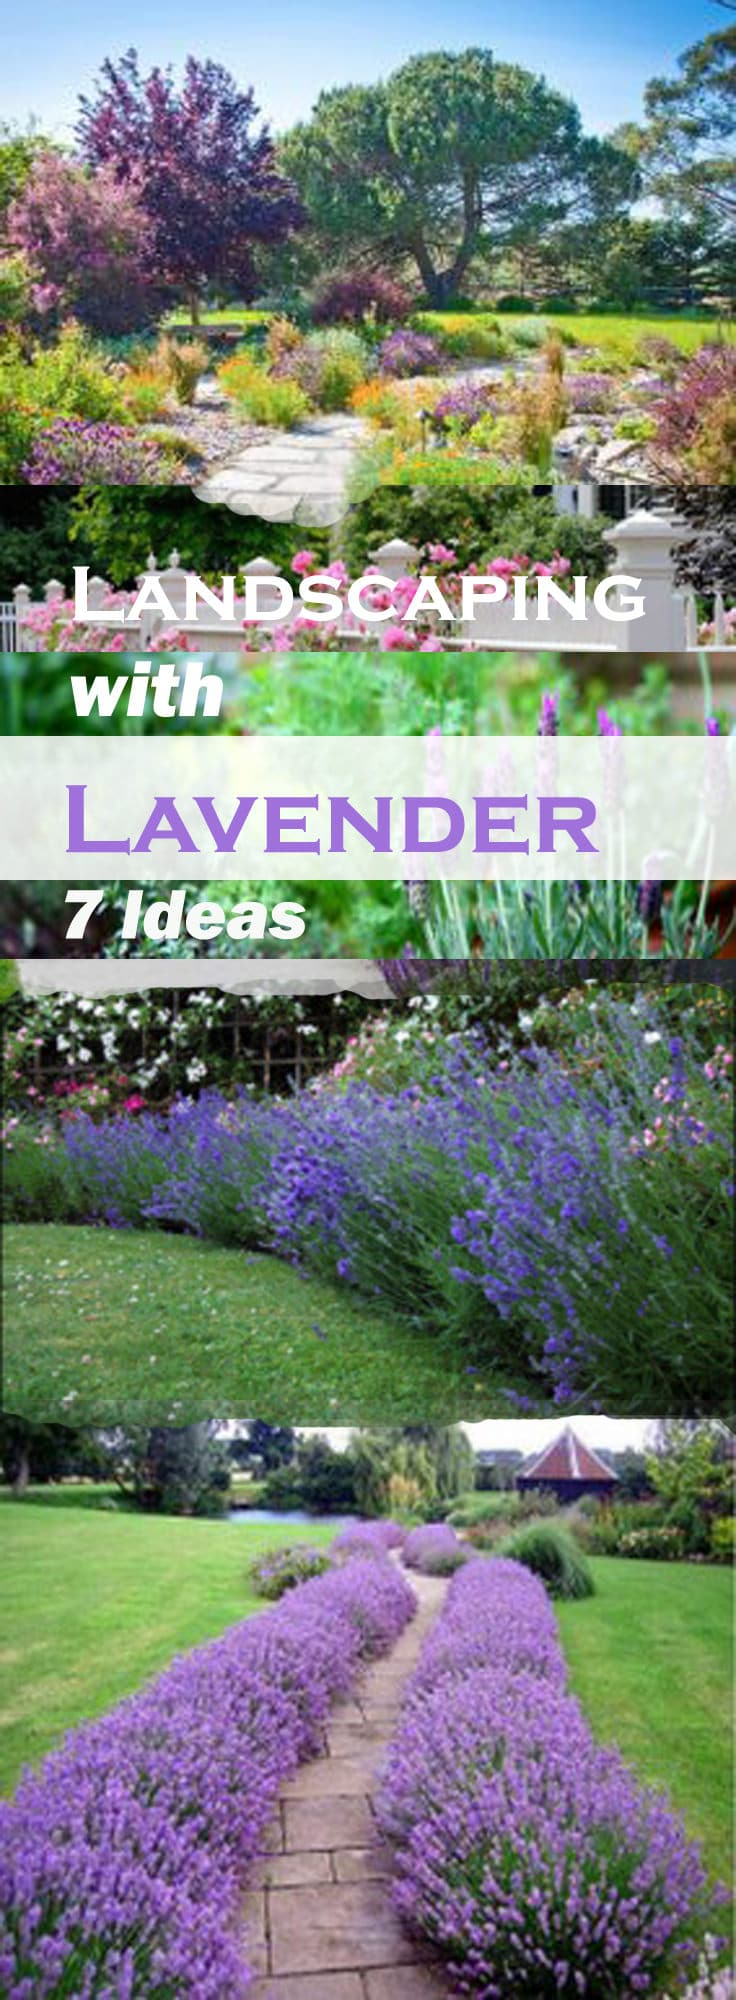 Designing Backyard Landscape Grace Design Associates Santa Barbara Ca  Landscaping With Lavender Is Easy And Of